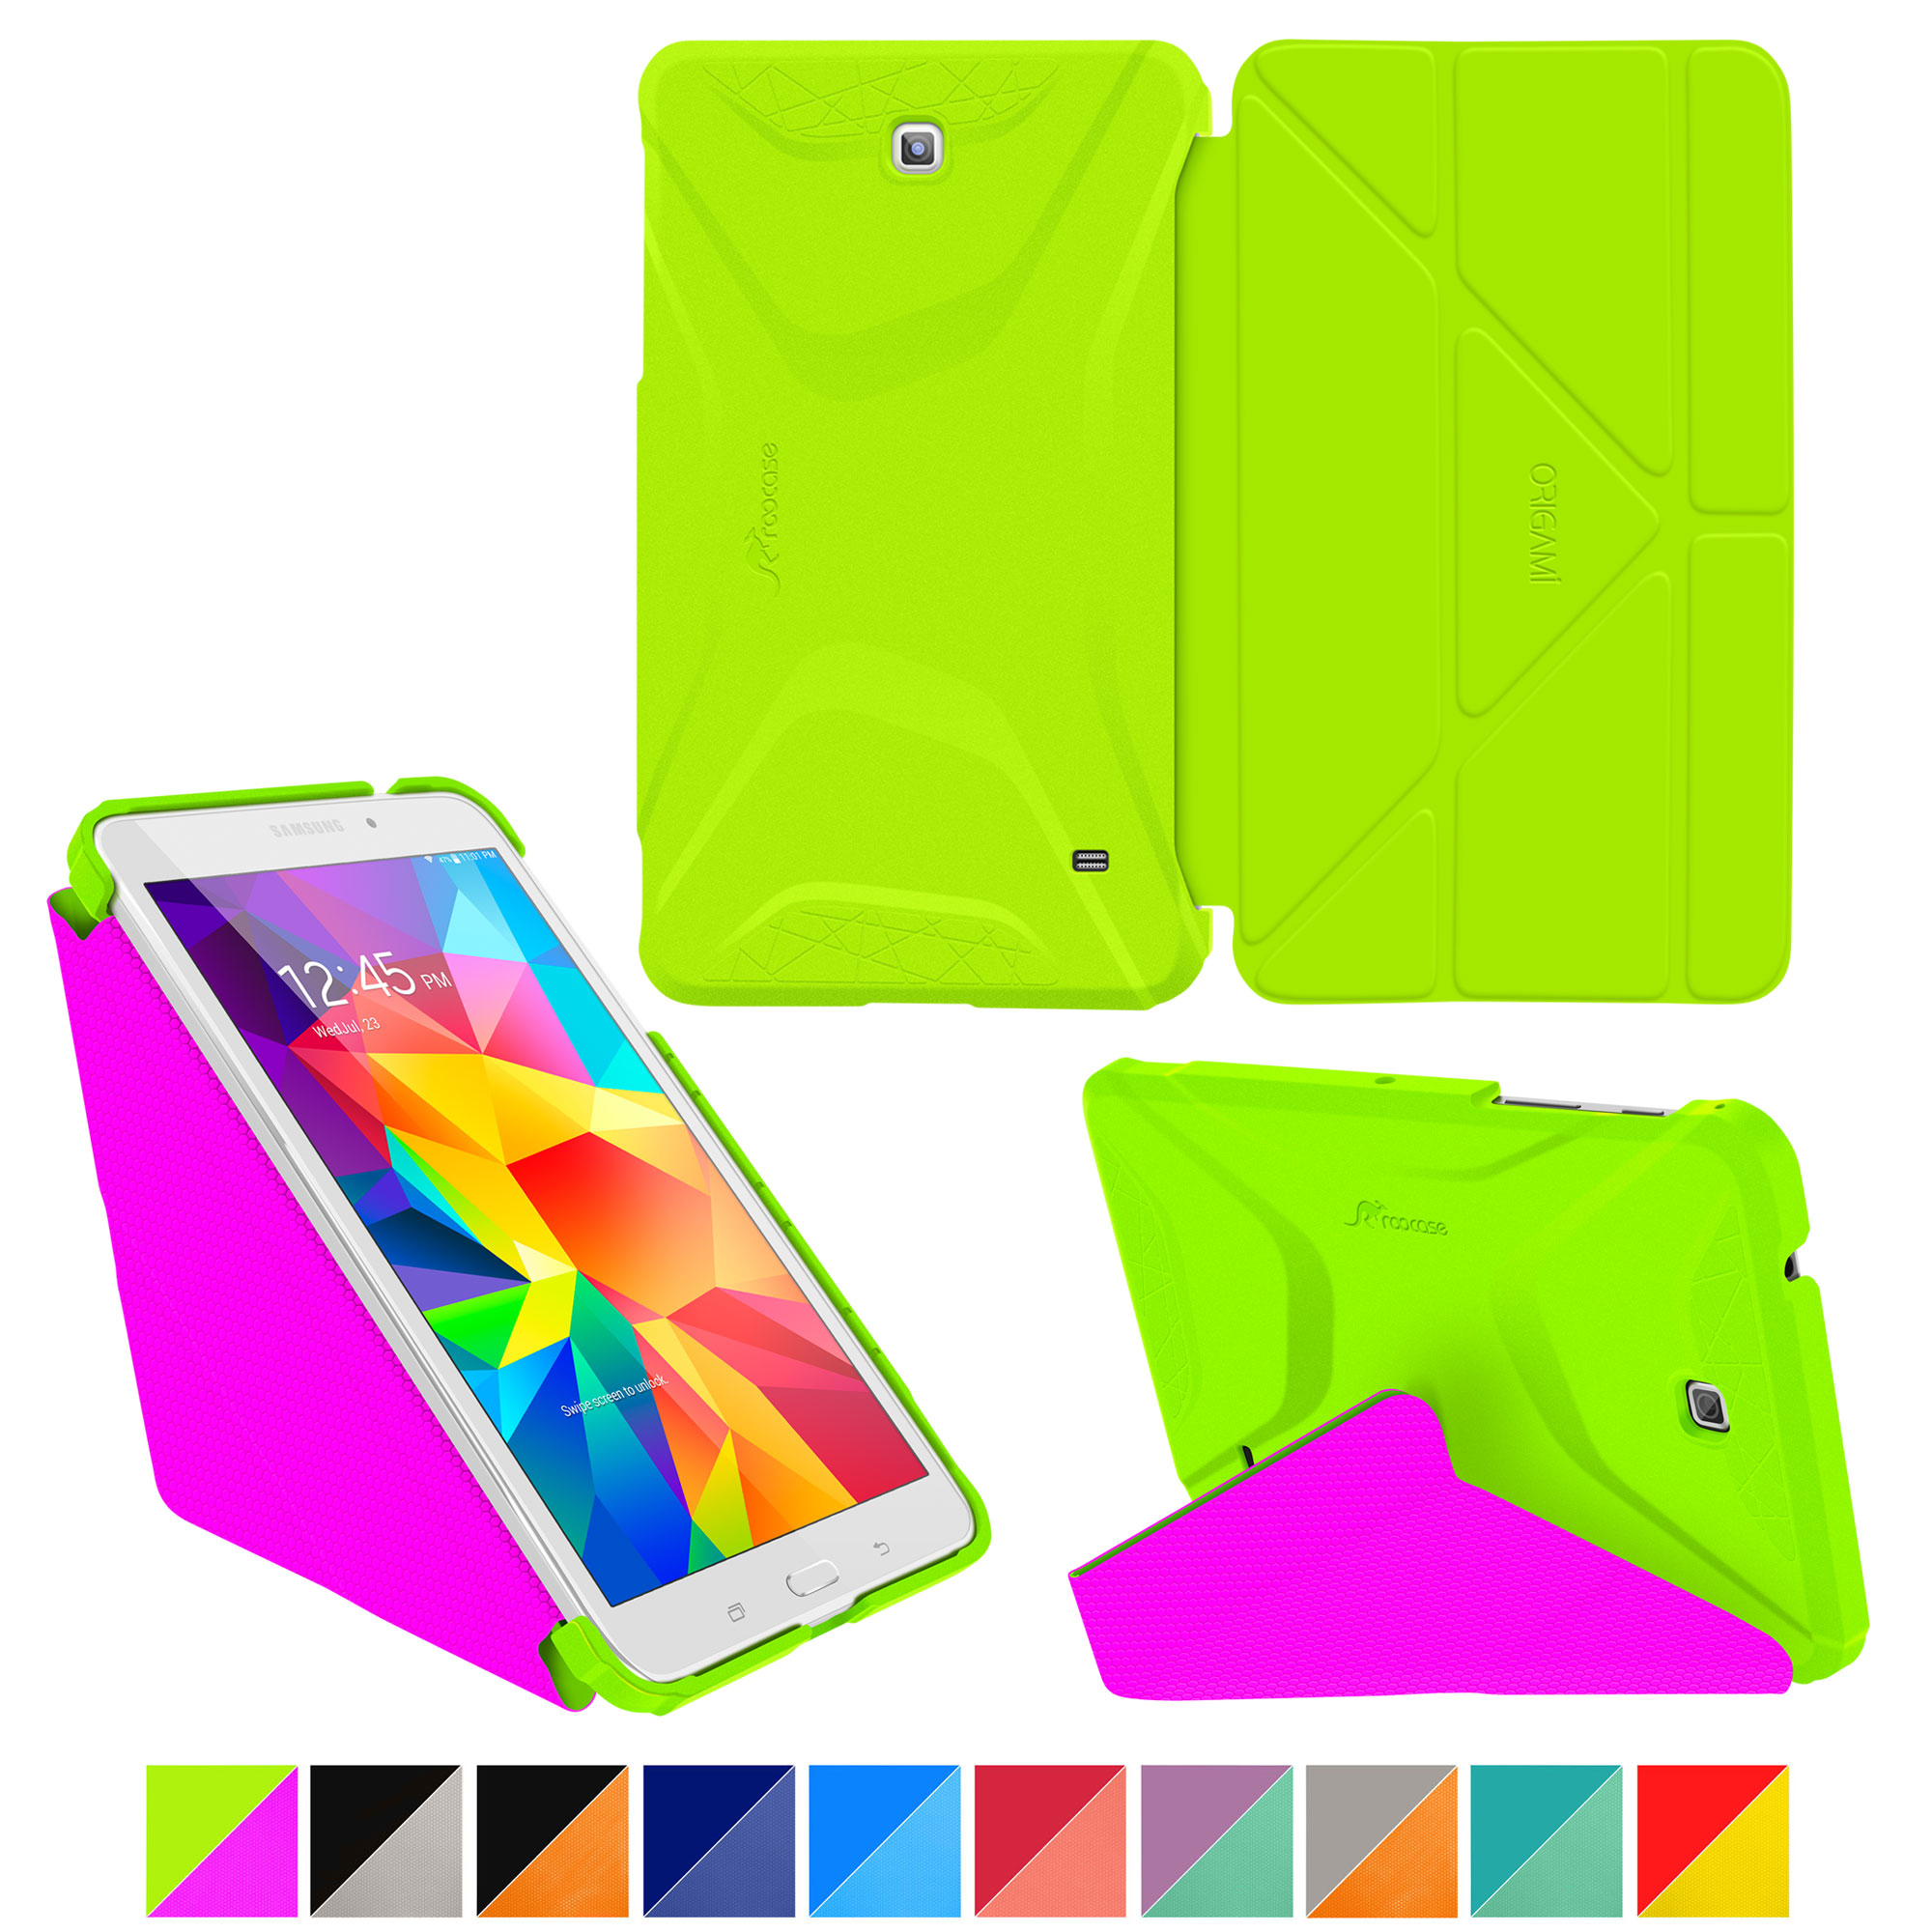 Galaxy Tab 4 8.0 Case, Samsung Galaxy Tab 4 8.0 Case, Origami Slim Shell Lightweight Folio Leather PU Case Smart Stand Tablet Cover - Green/Pink